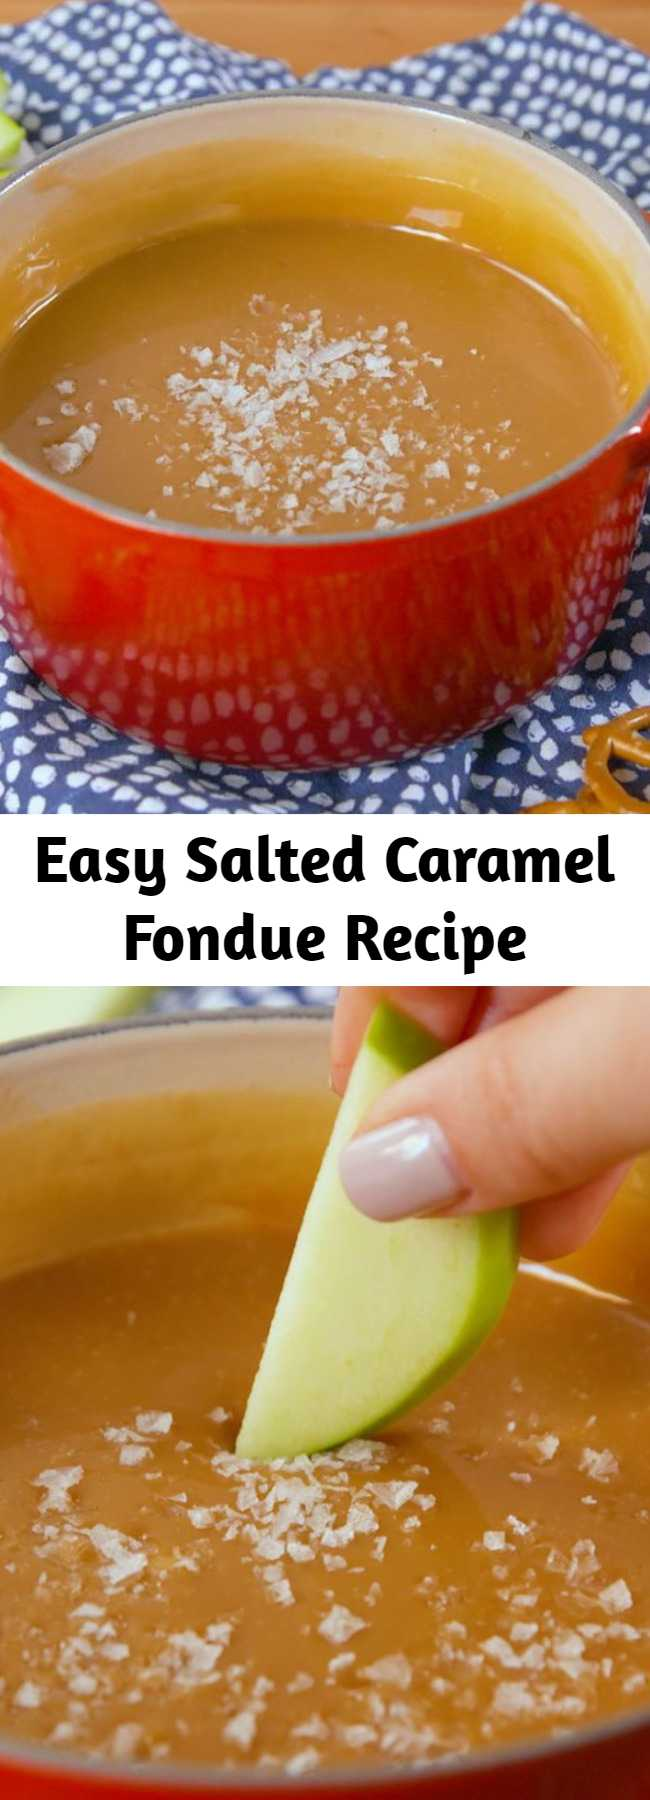 """Easy Salted Caramel Fondue Recipe - """"Fondue"""" sounds fancy and French, but it can be super simple to whip together. Like make it, from beginning to end, in less than 20 minutes easy. At least, if we're talking about caramel fondue — our new favorite party trick."""